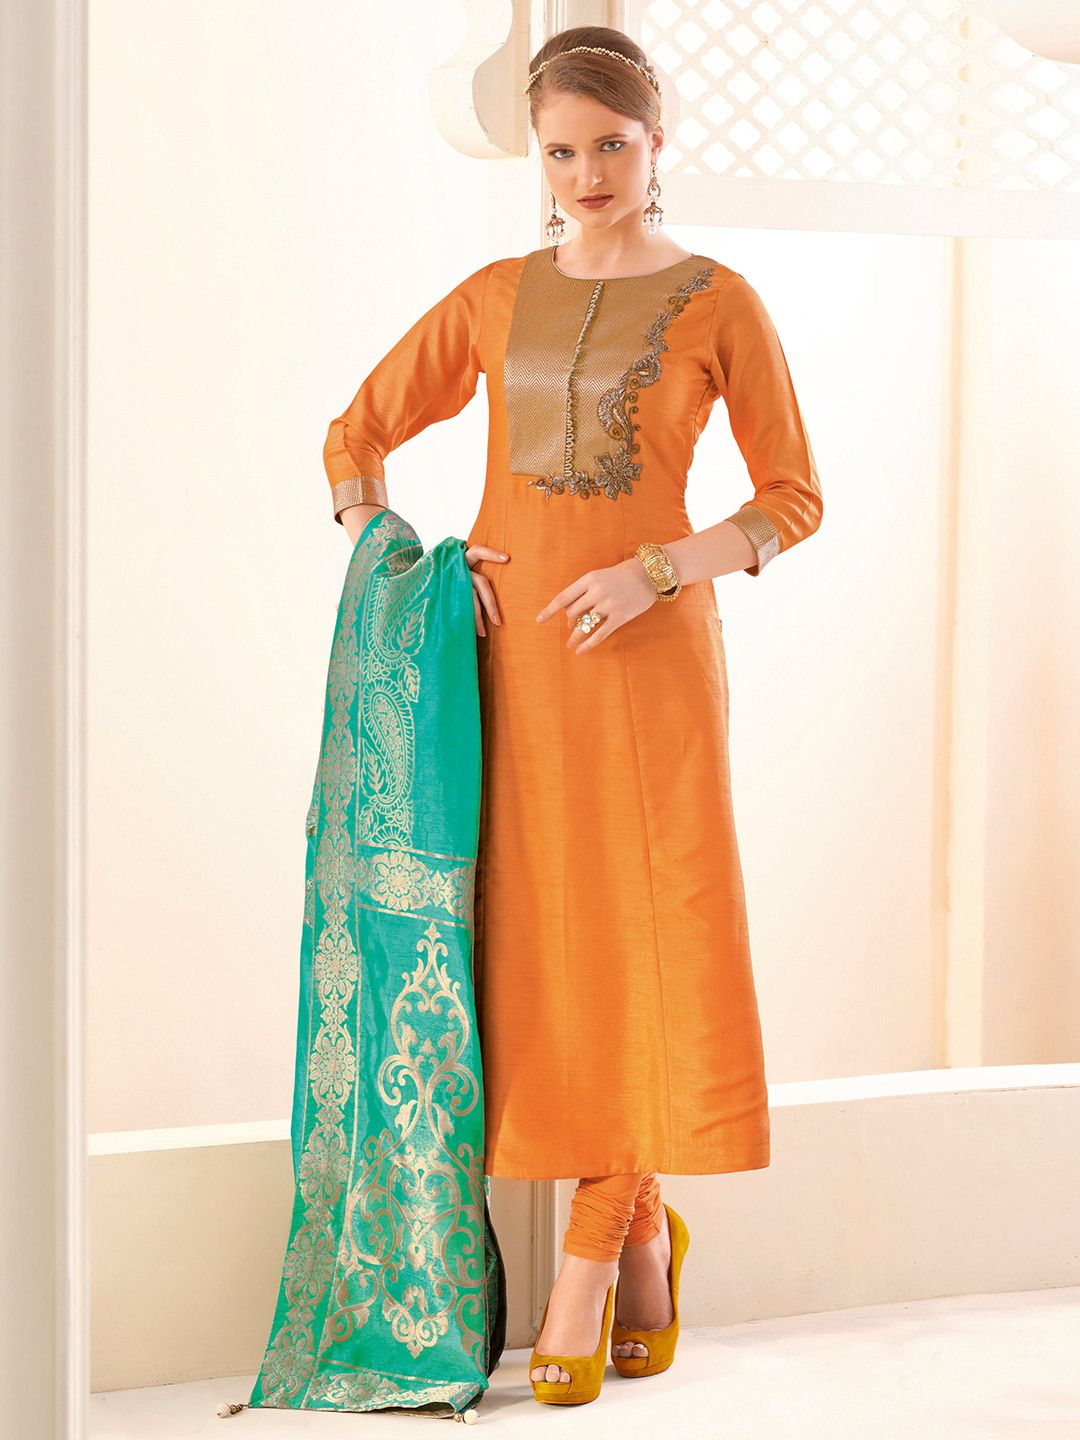 9be9da8504 Shop Plain silk orange salwar suit online from G3fashion India. Brand - G3,  Product code - G3-WSS00111, Price - 6495, Color - Orange, Fabric - Silk,